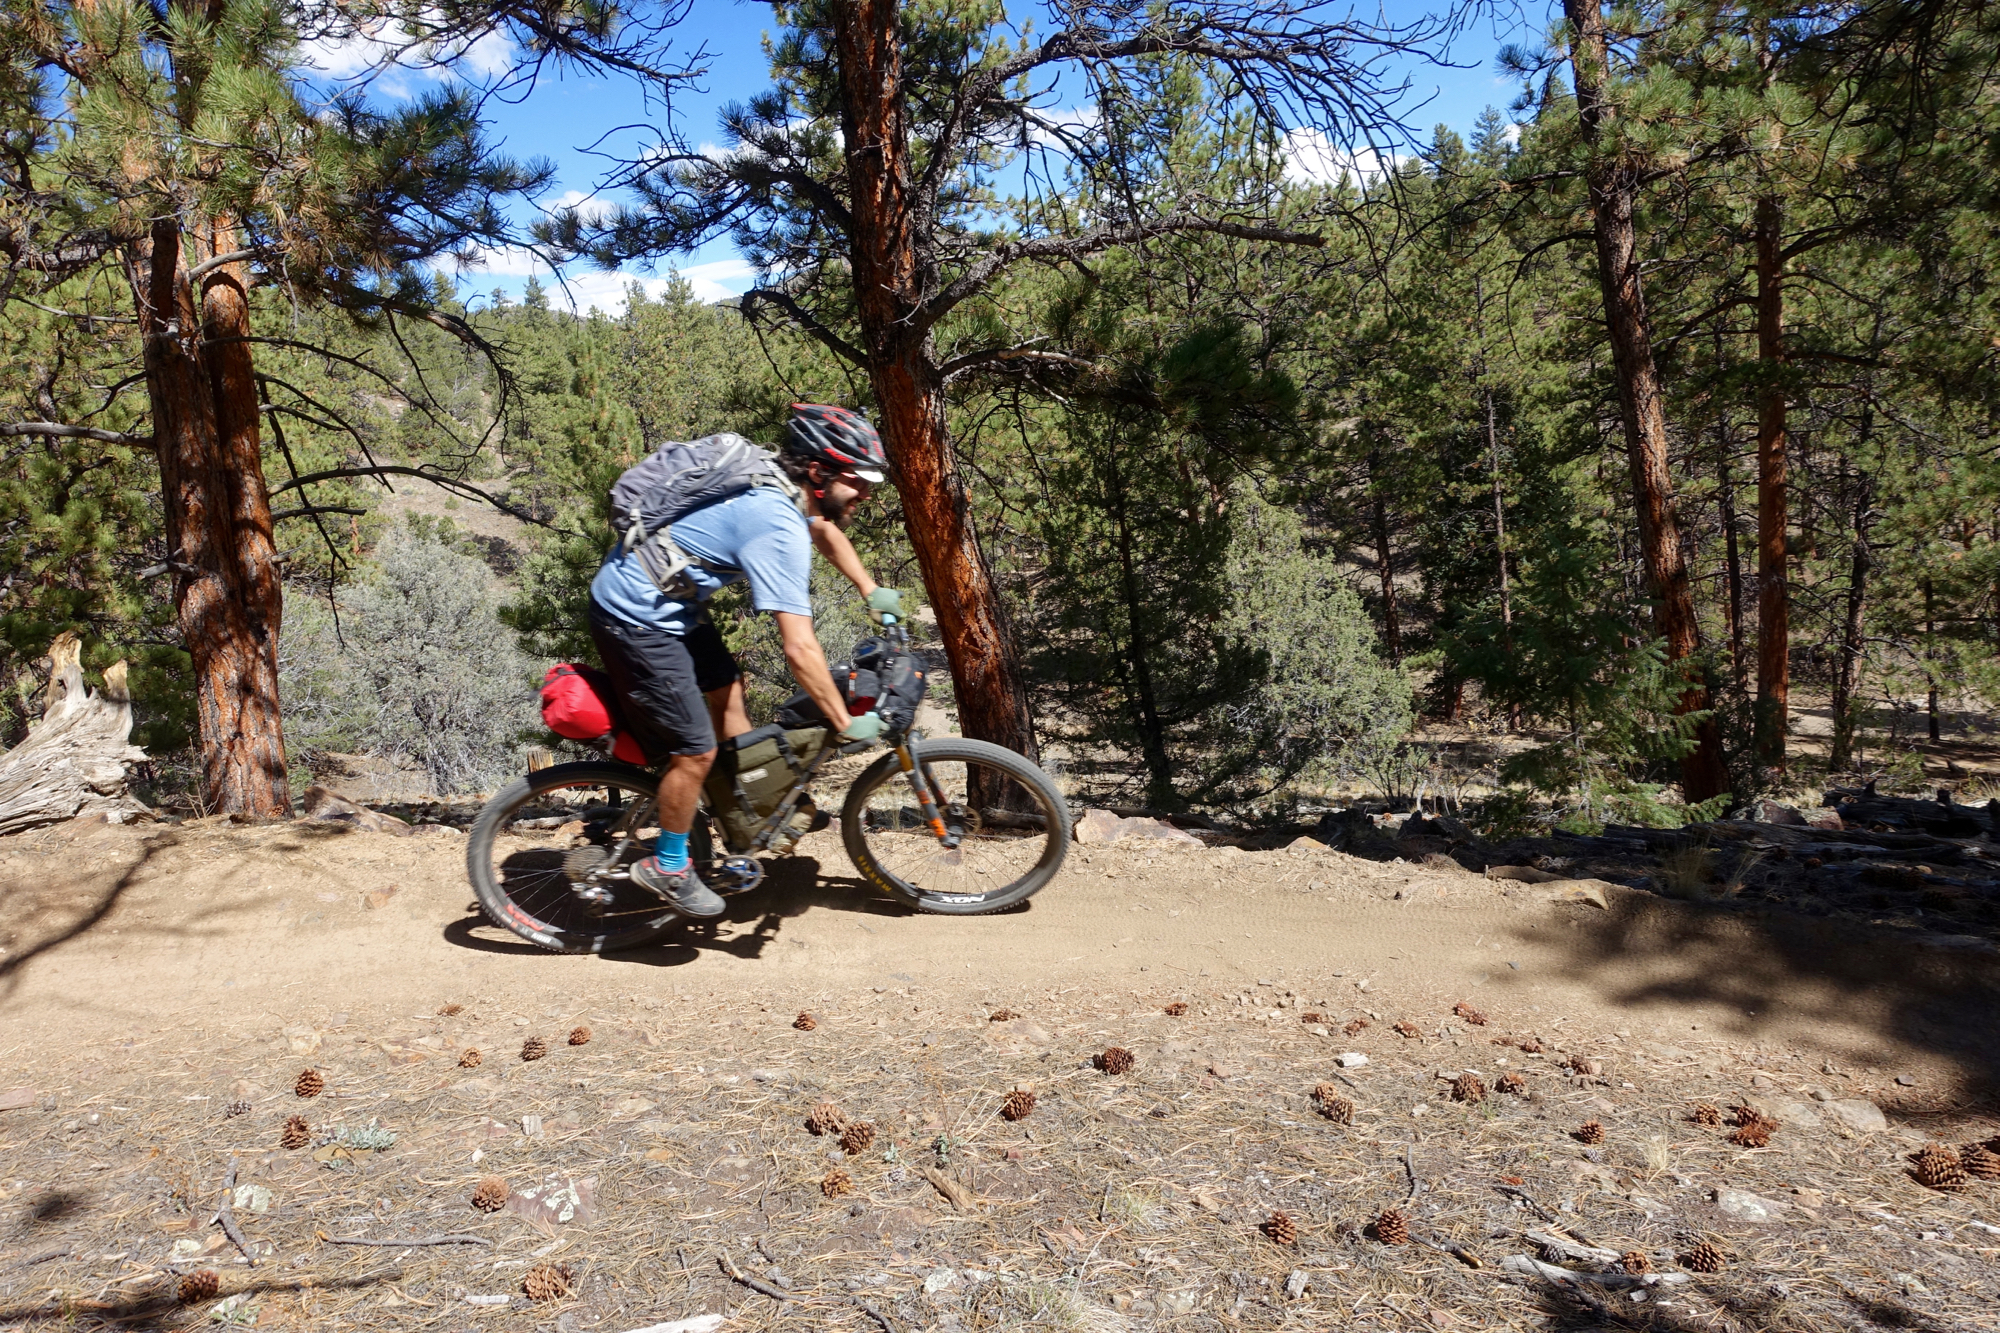 Opinion: Riding Isn't About Fitness, It's About Adventure